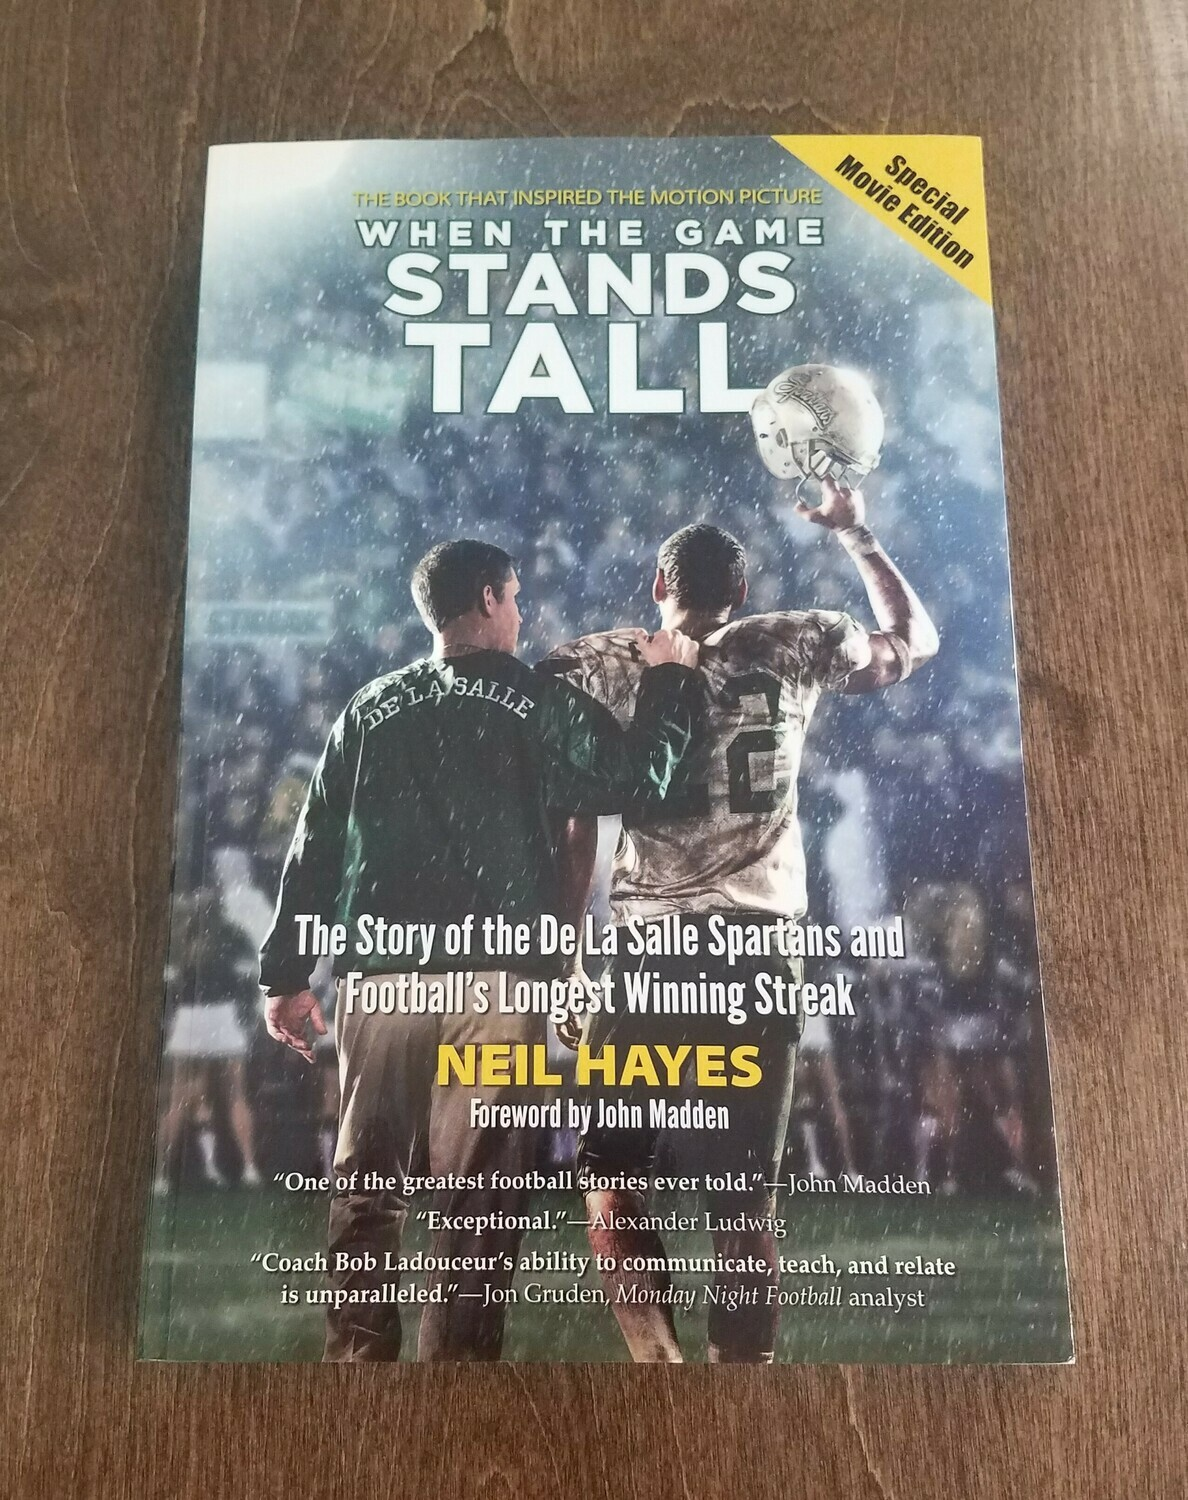 When the Game Stands Tall by Neil Hayes and John Madden